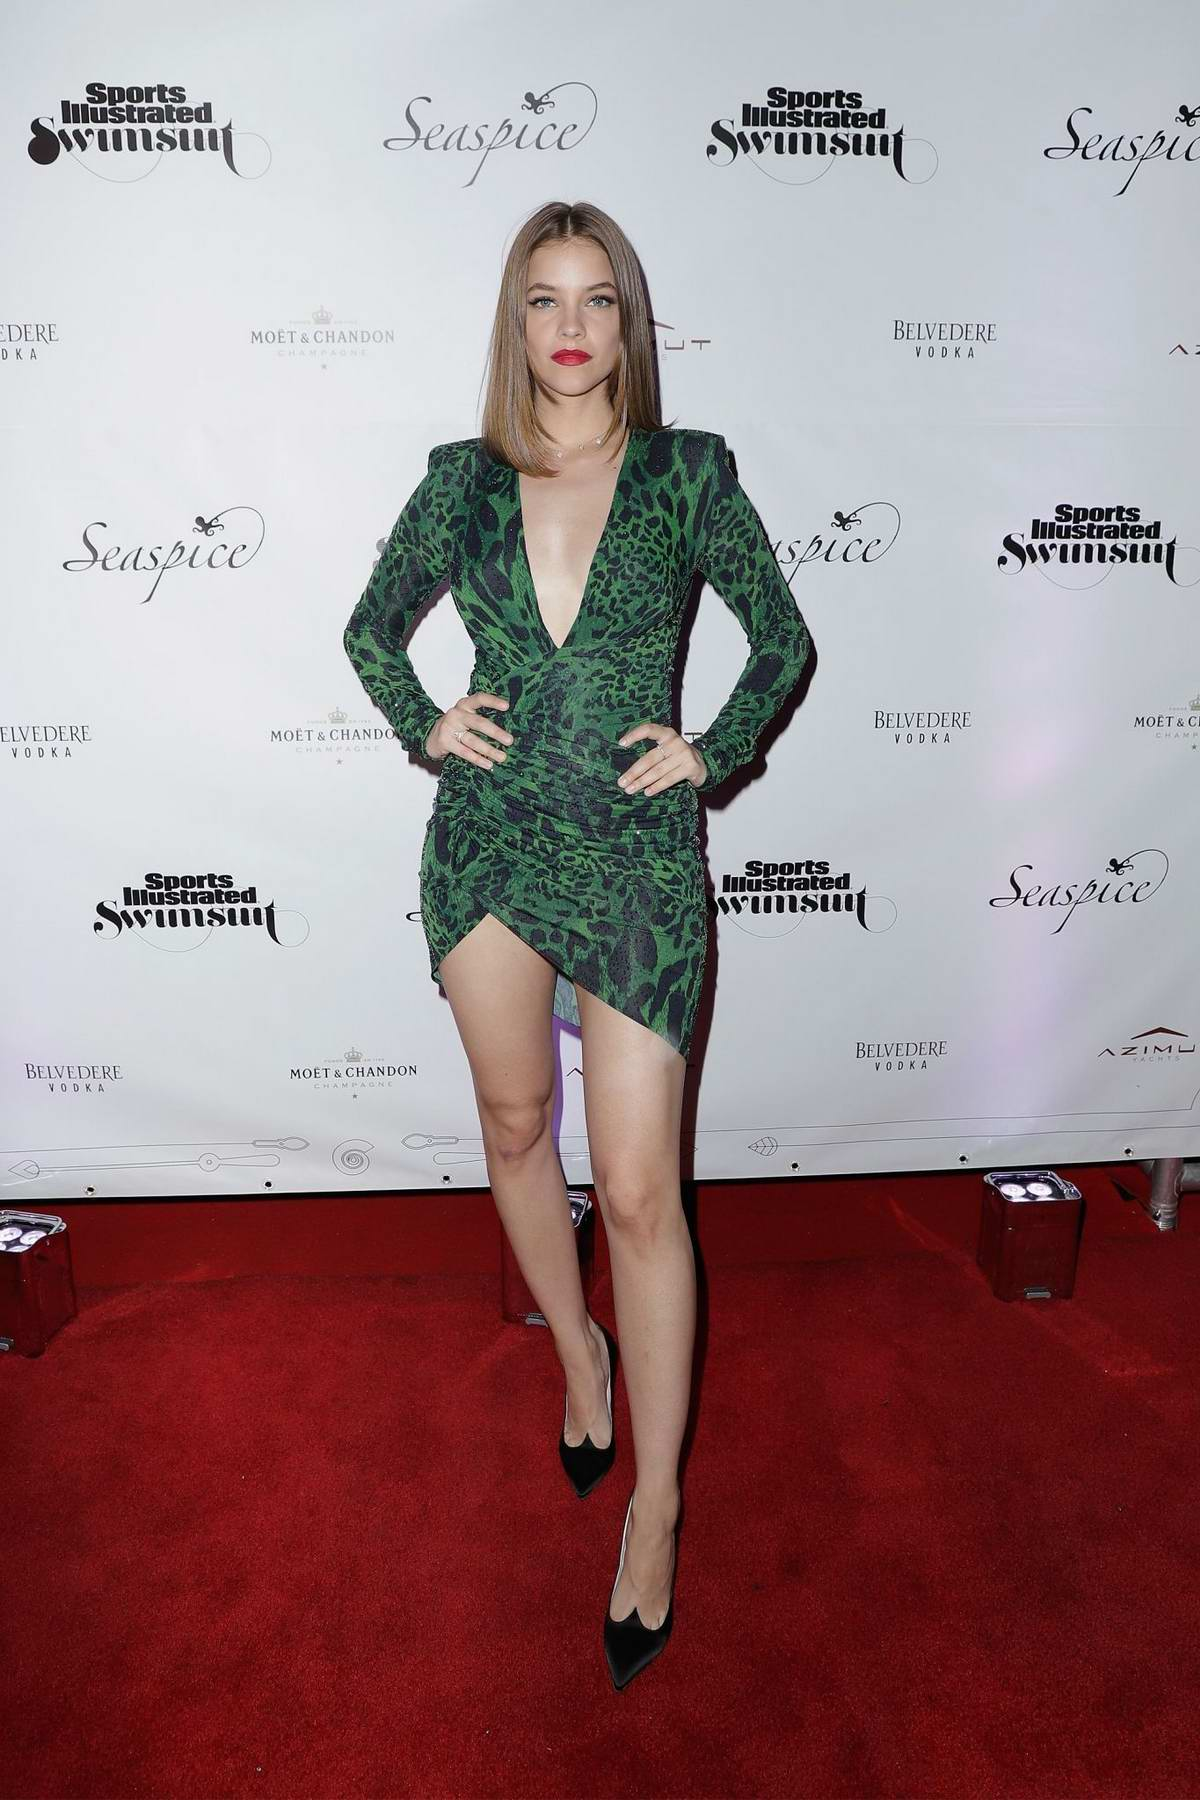 Barbara Palvin attends Sports Illustrated Swimsuit 2019 Issue Launch at Seaspice in Miami, Florida